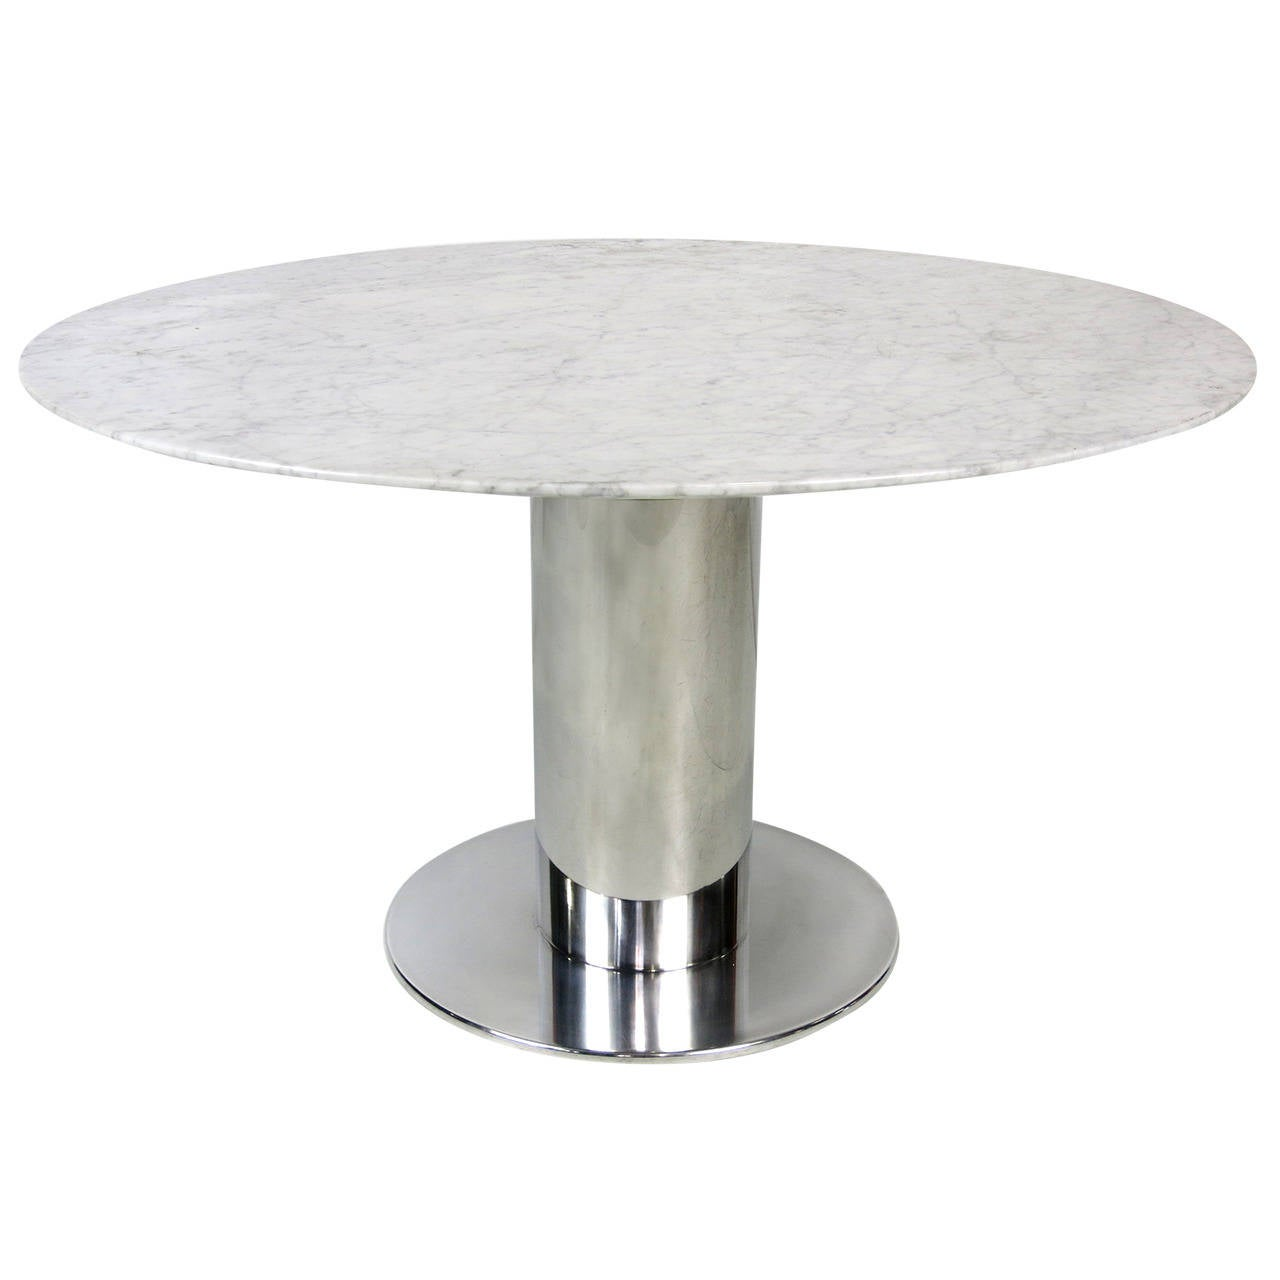 polished stainless steel dining table base 1